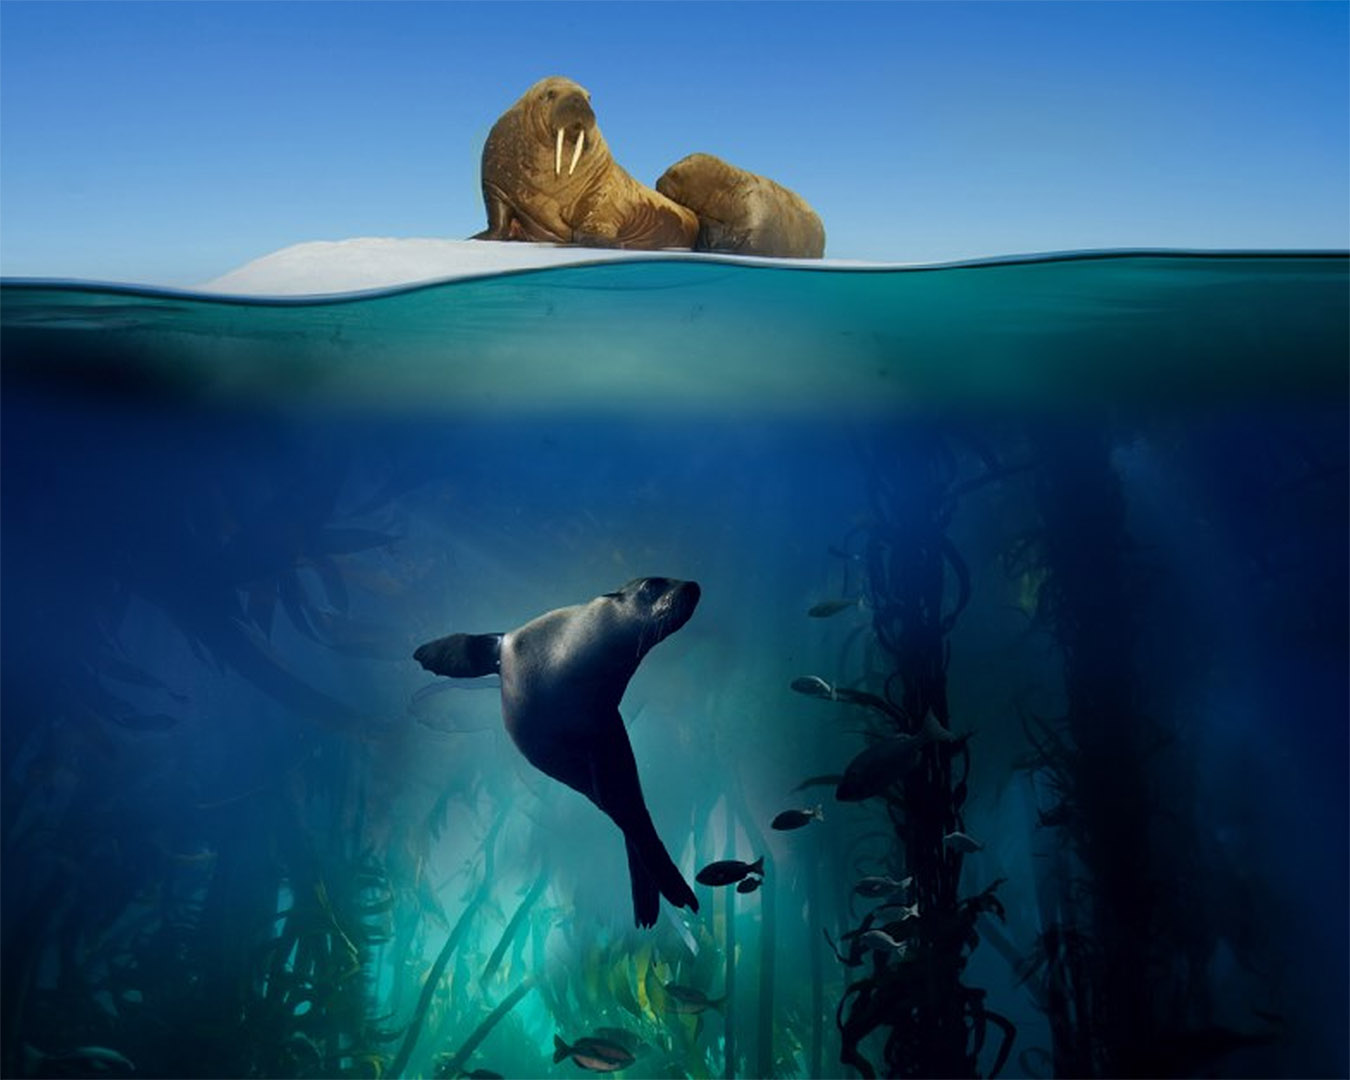 A seal below and a walrus above in a cross section image of the sea.